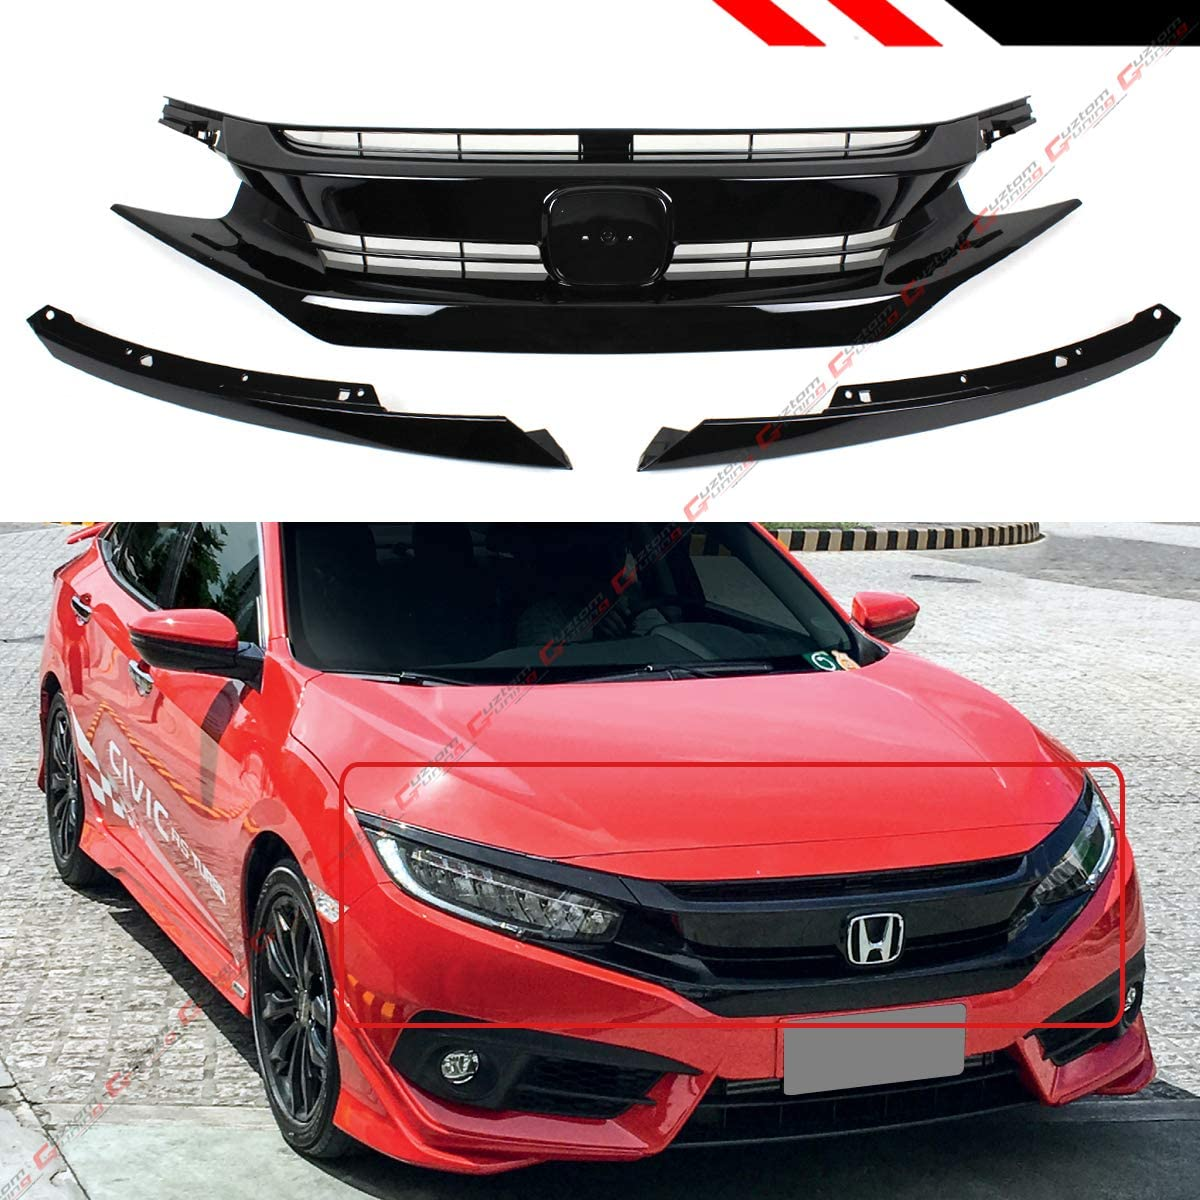 Honda Civic 2016 Black >> Fits For 2016 2019 Honda Civic 10th Gen Jdm Si Rs Style Black Front Hood Grill Grille Eye Lid Replacement